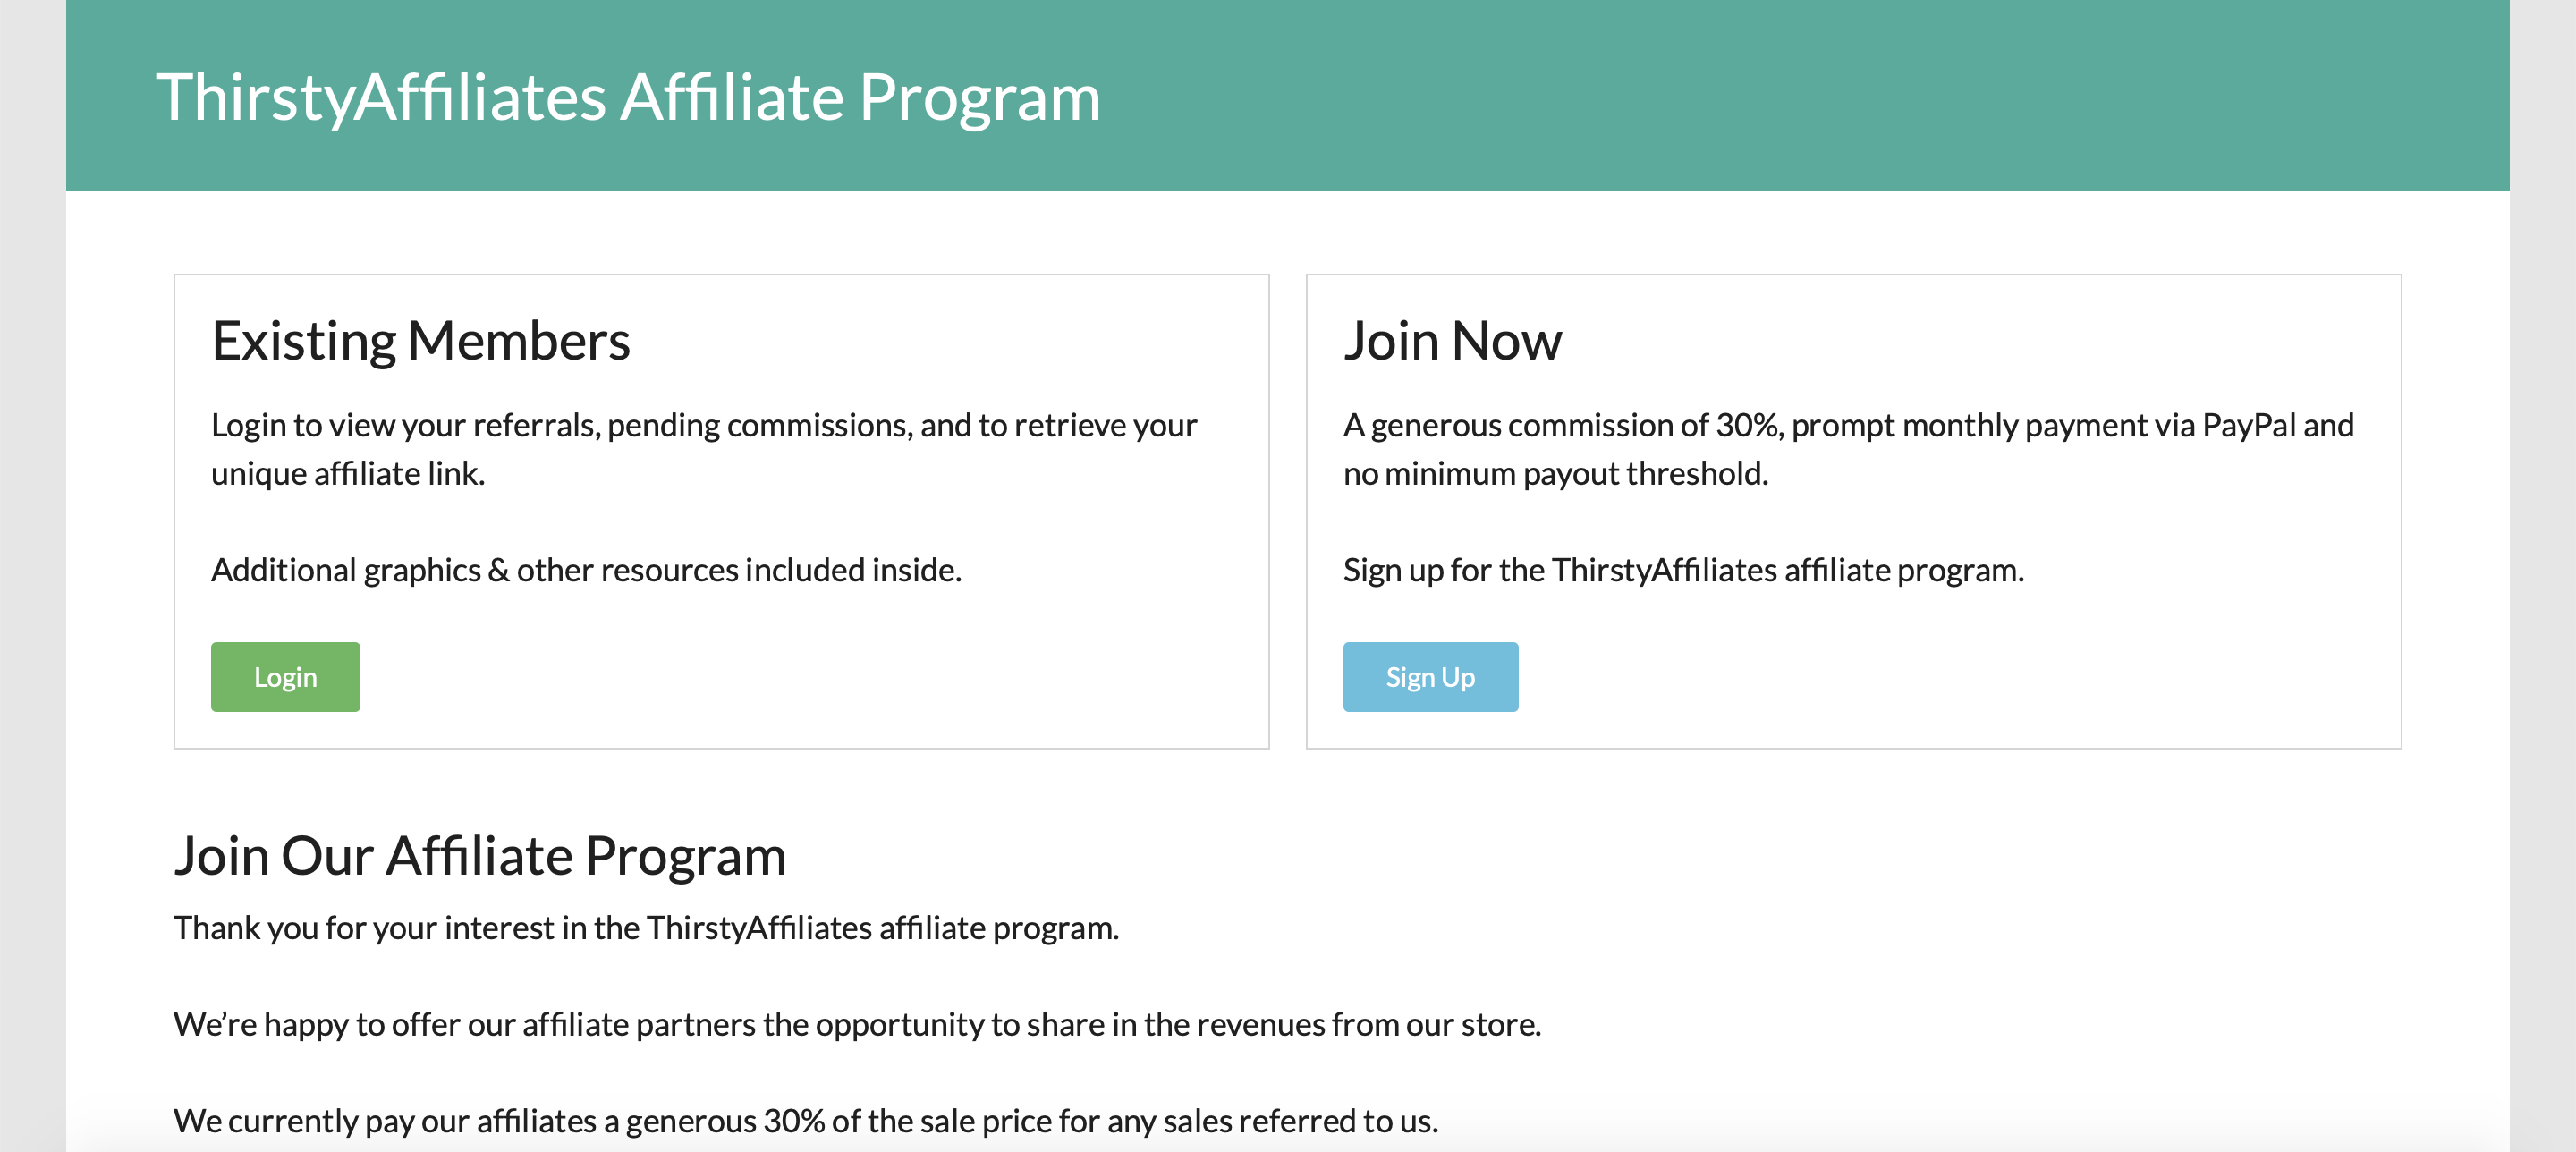 thirstyaffiliates-affiliate-program